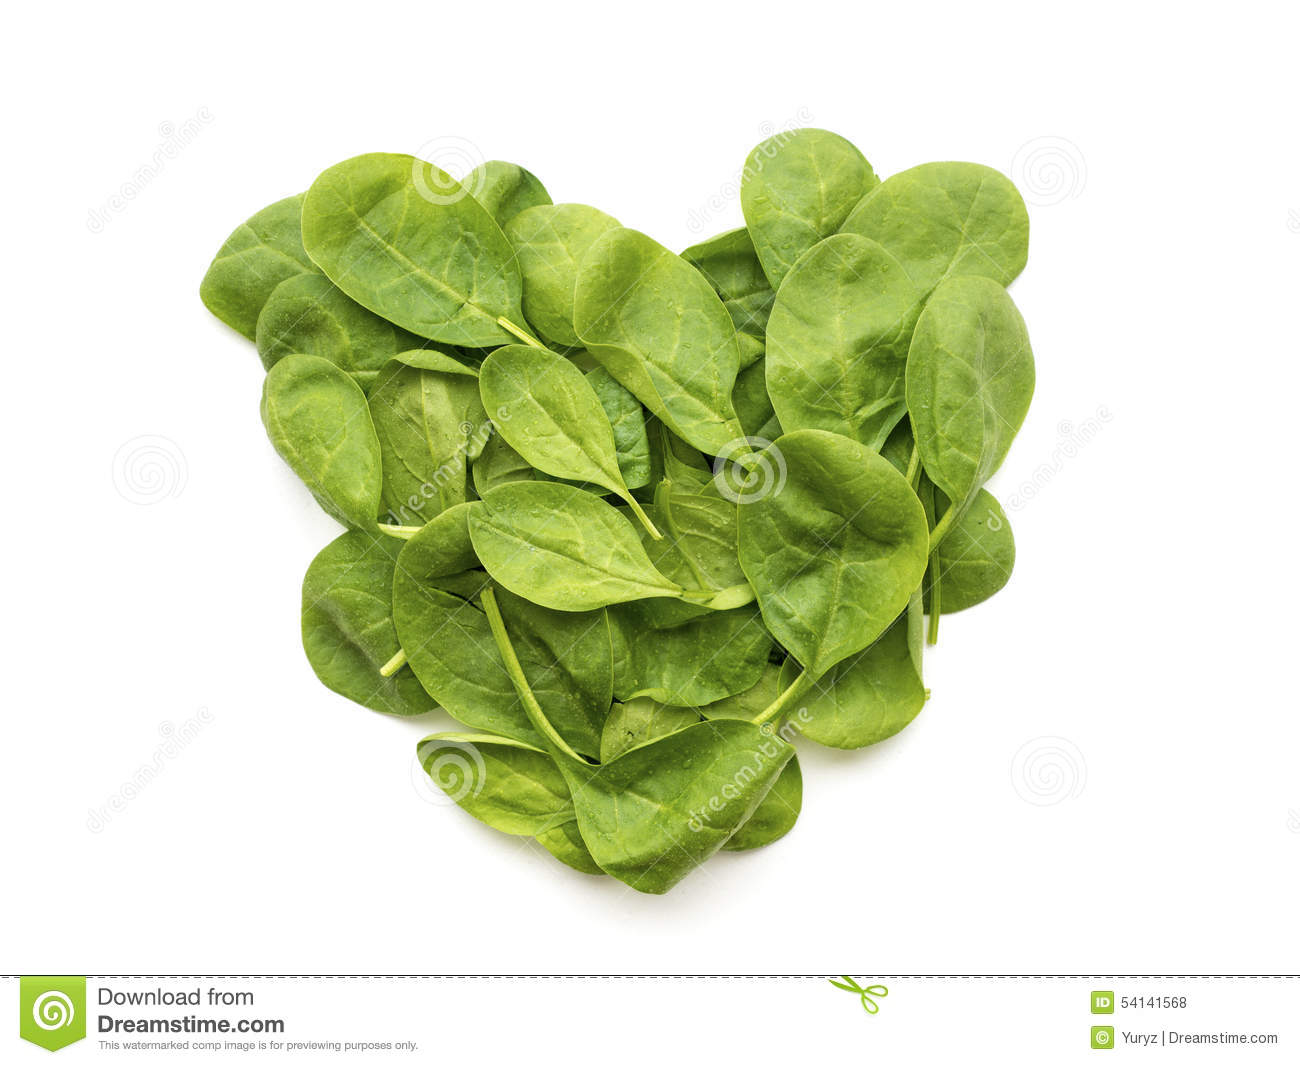 how to cook spinach leaves healthy